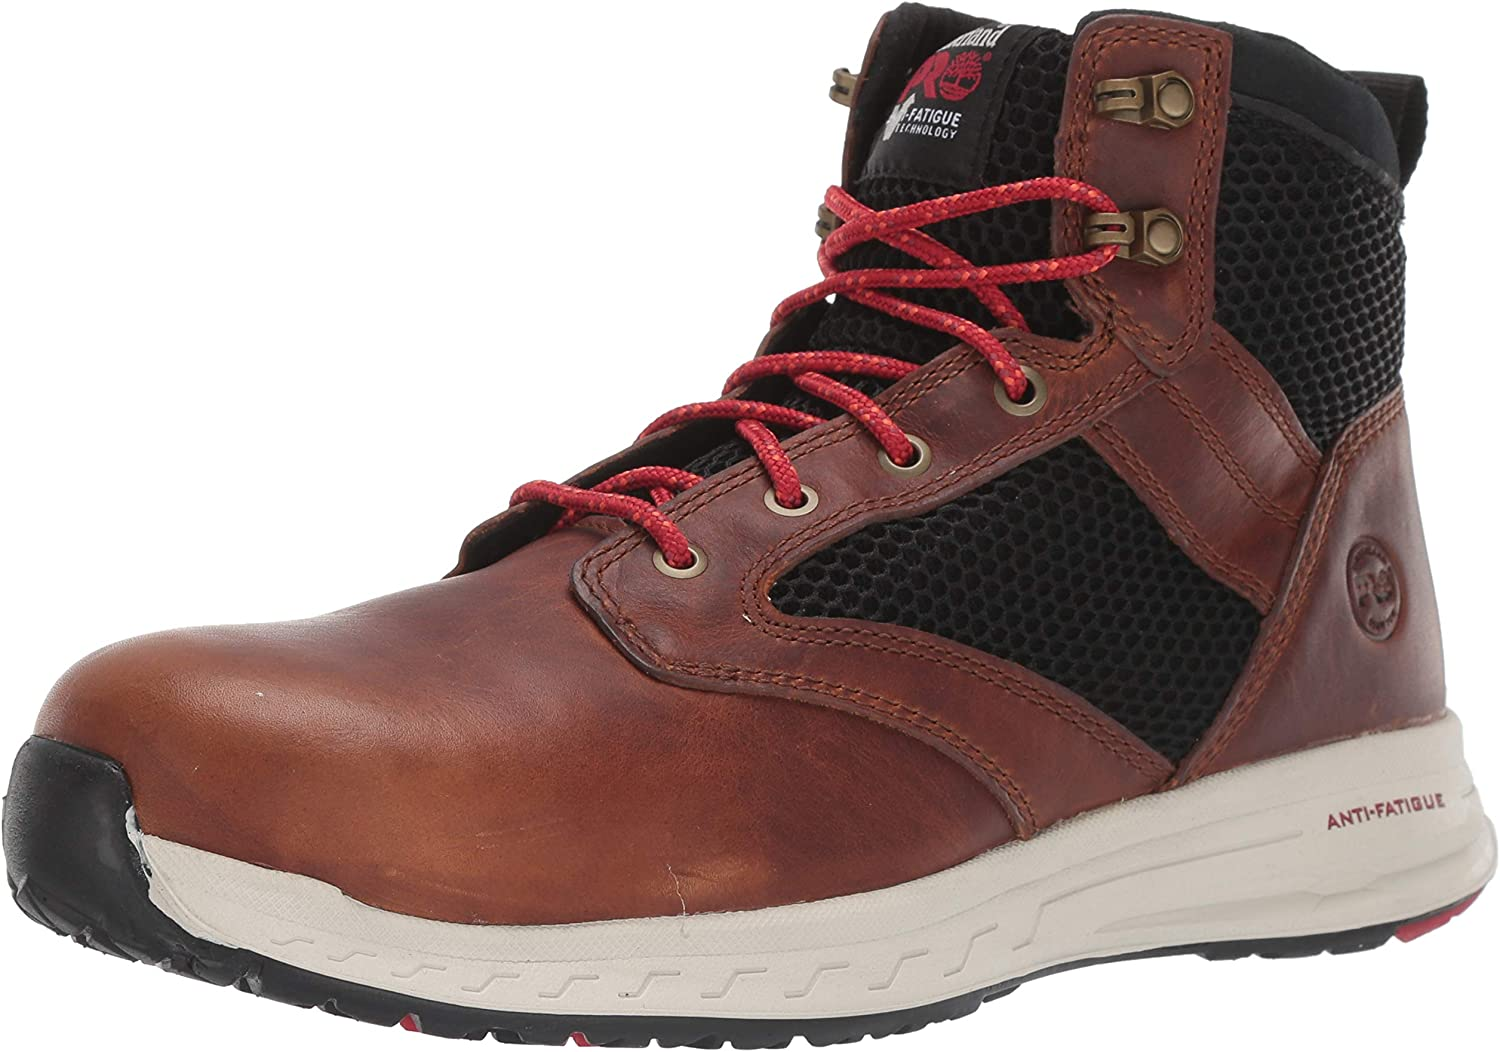 Timberland PRO Men's Drivetrain Mid Composite Safety Toe Electrical Hazard Athletic Leather Work Boot, Brown, 9